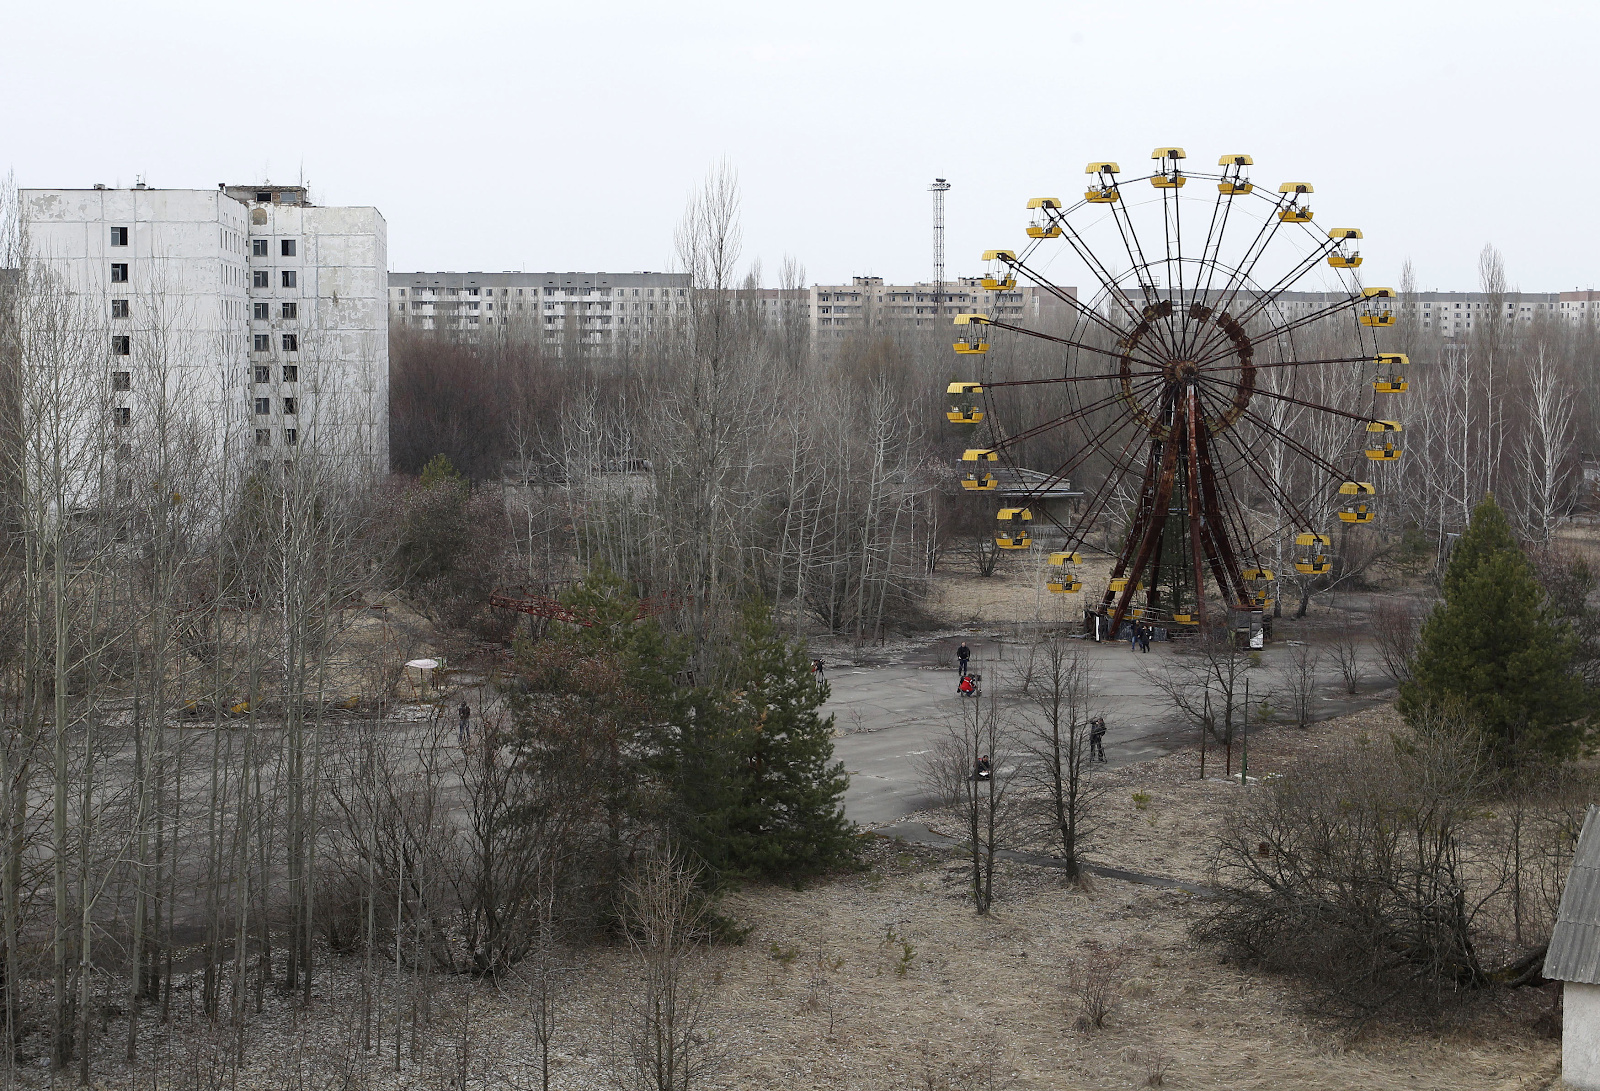 The abandoned city of Pripyat, near the Chernobyl nuclear power plant.